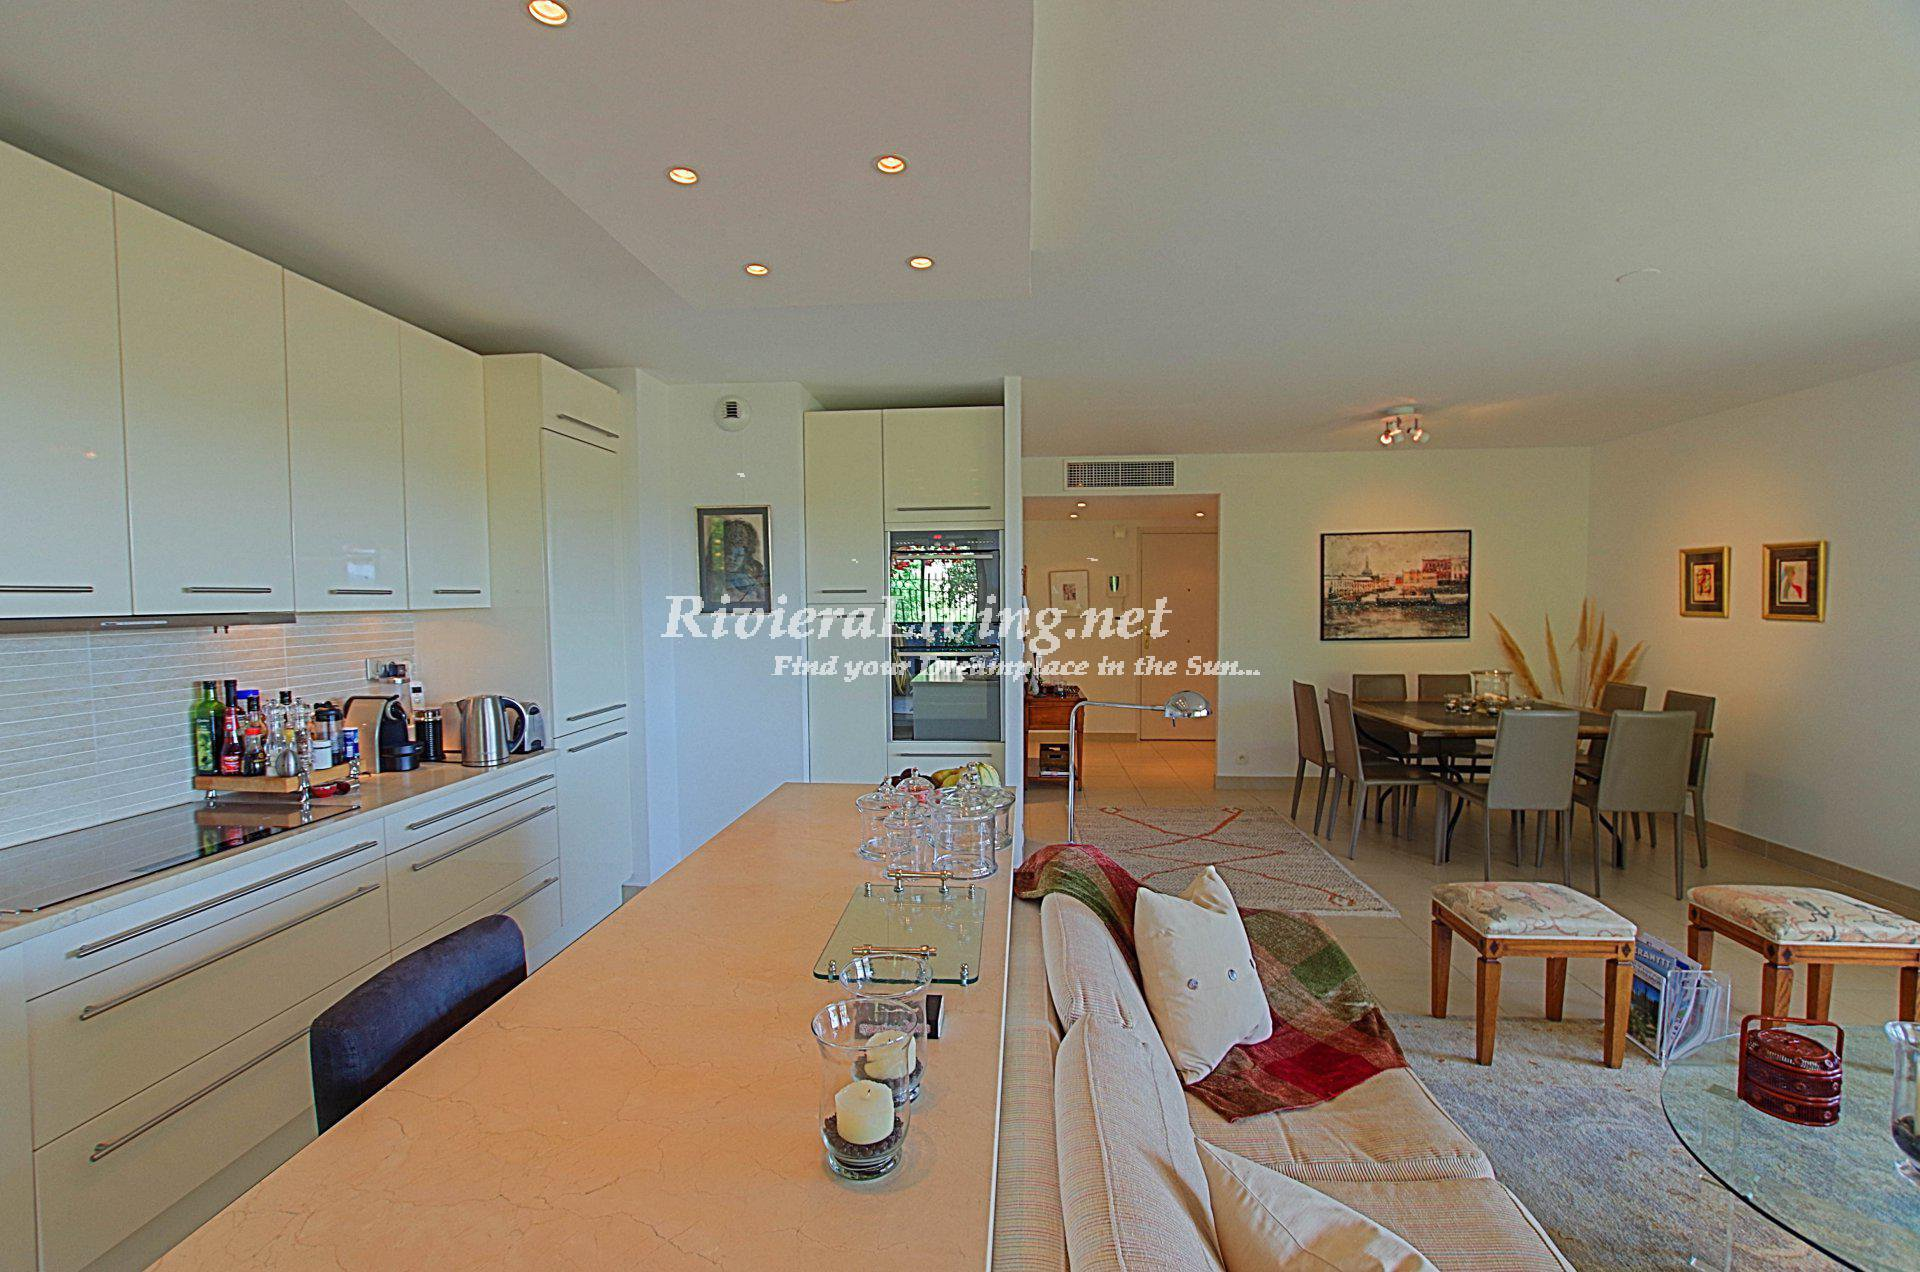 MANDELIEU-LA-NAPOULE --- Beautiful 3 bedroom apartment in a luxury residence. Large sunny terrace and wonderful sea view. Pool with children pool, caretaker and security at the entrance, tennis and gy